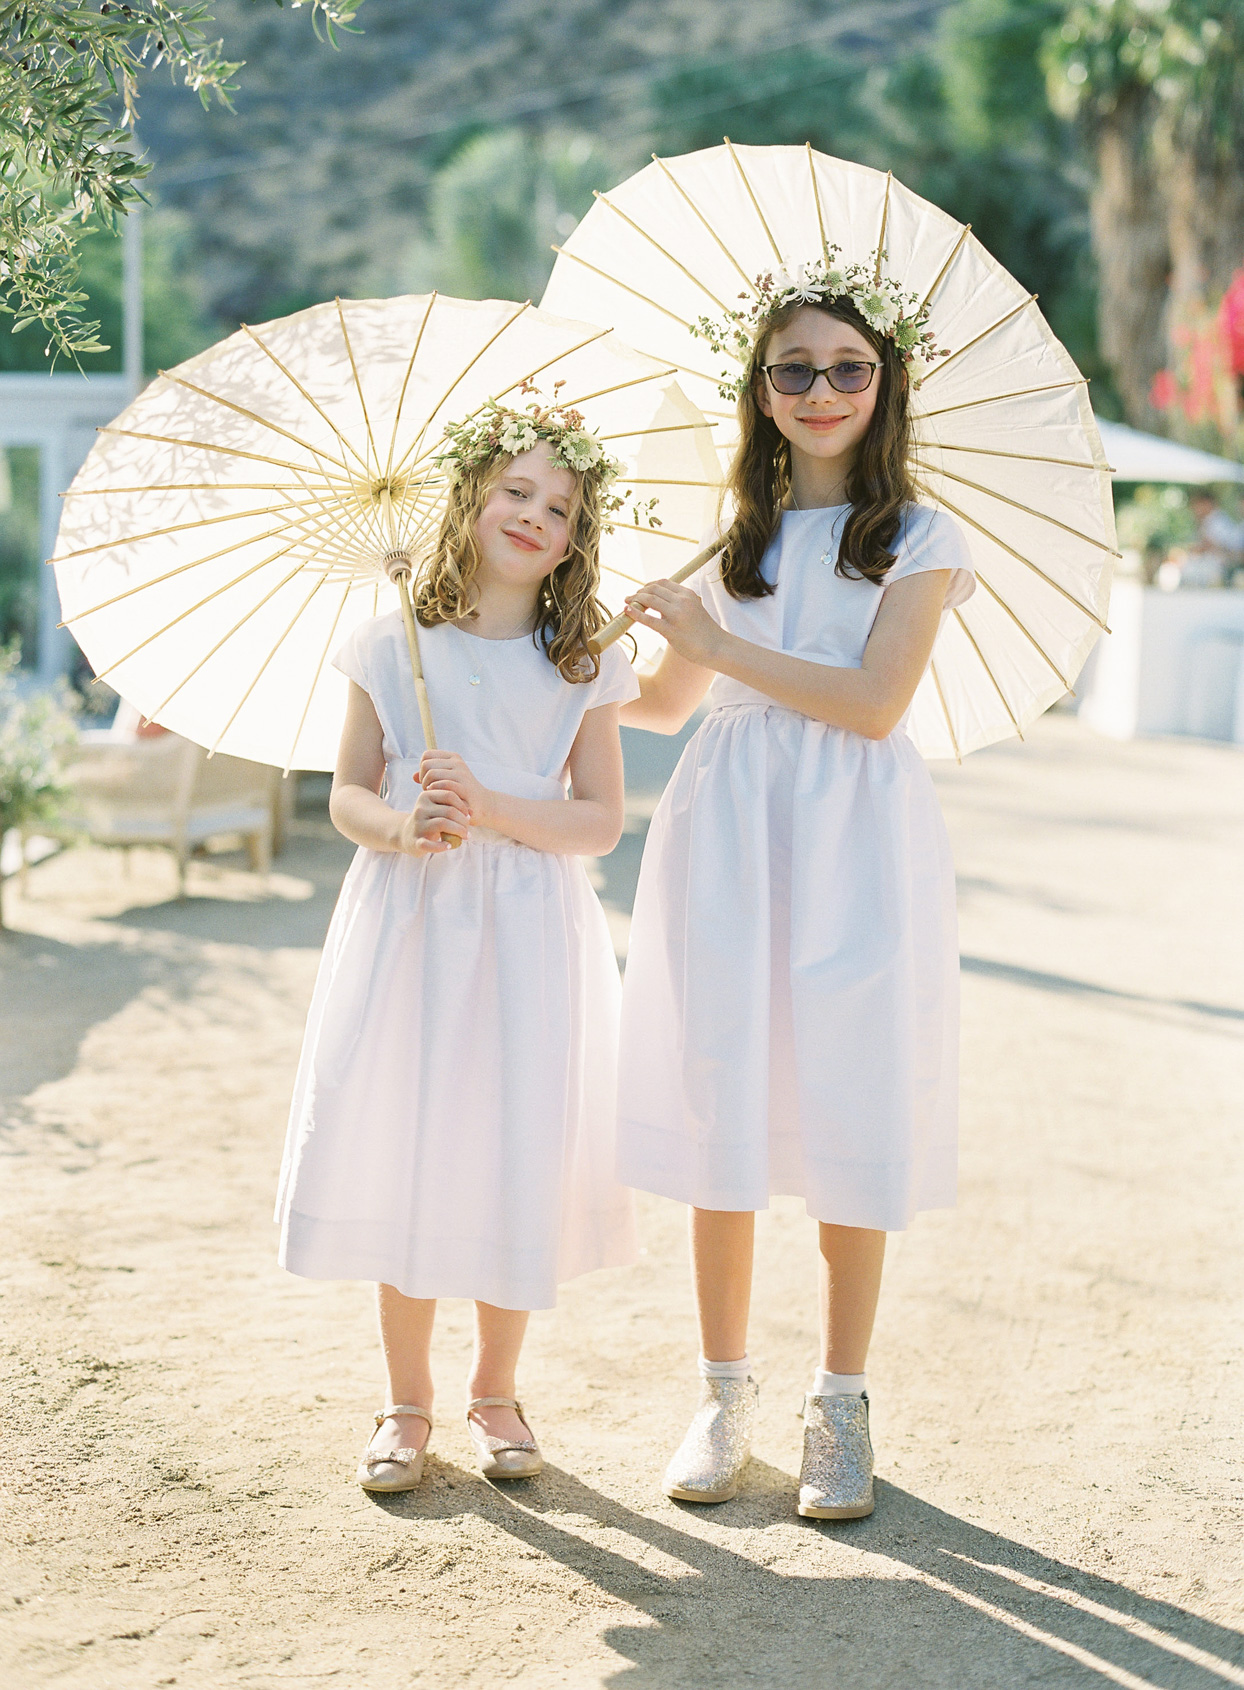 wedding flower girls holding parasols in the sun